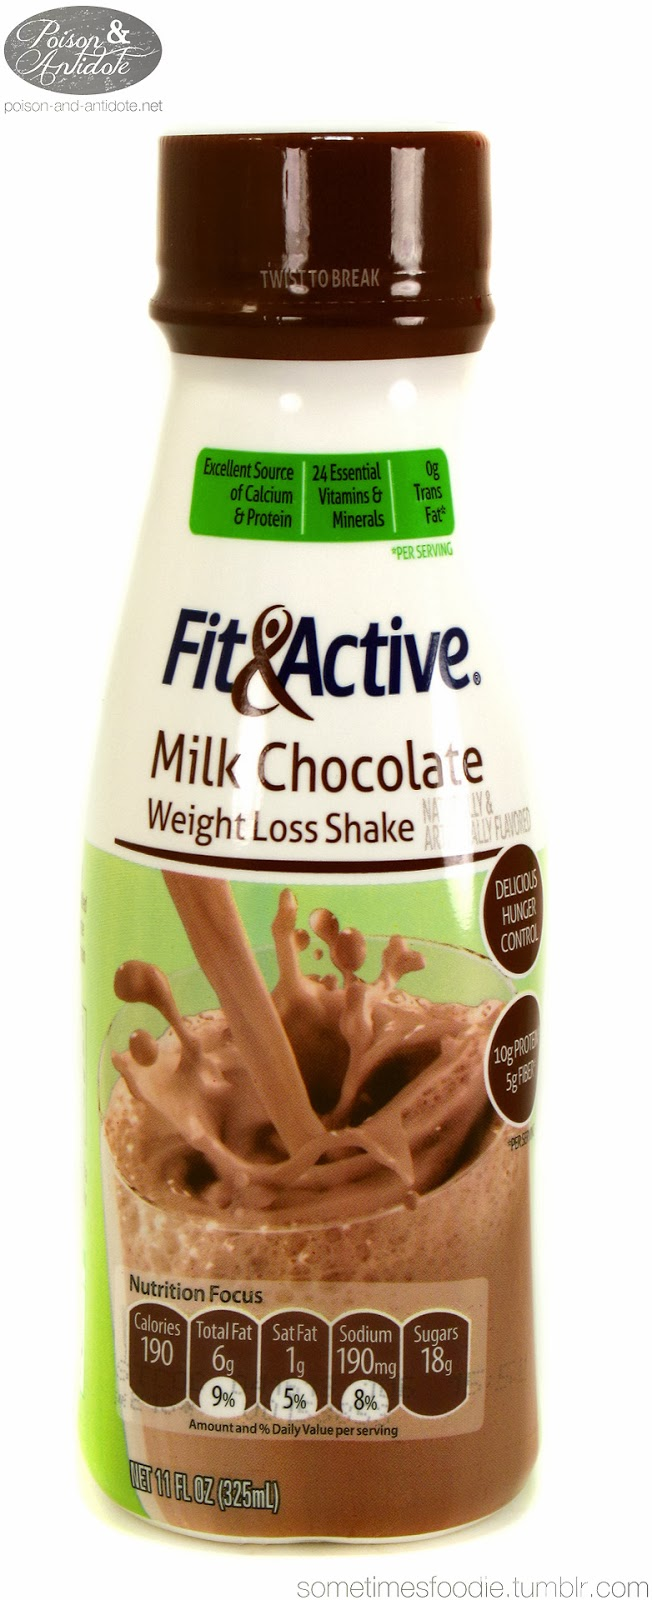 Sometimes Foodie: Fit & Active Milk Chocolate Weight Loss ...